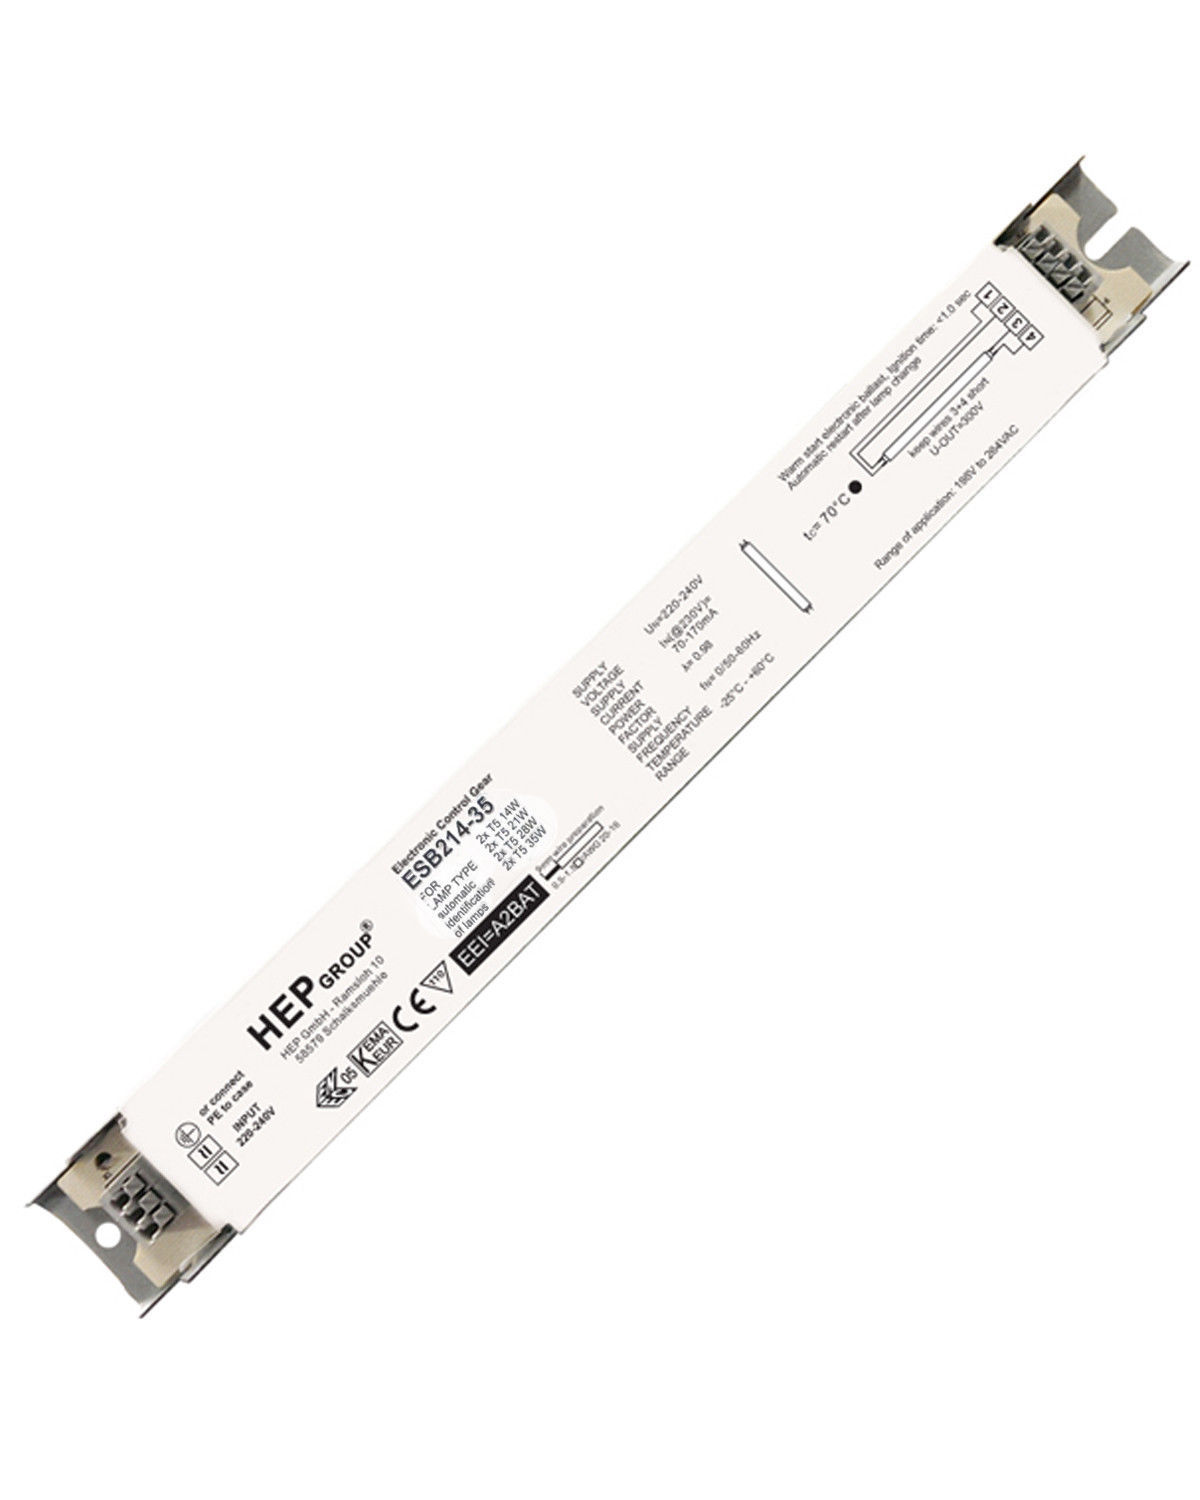 Electronic Ballast 2 X 28 Watt For T5 Fluorescent Tube